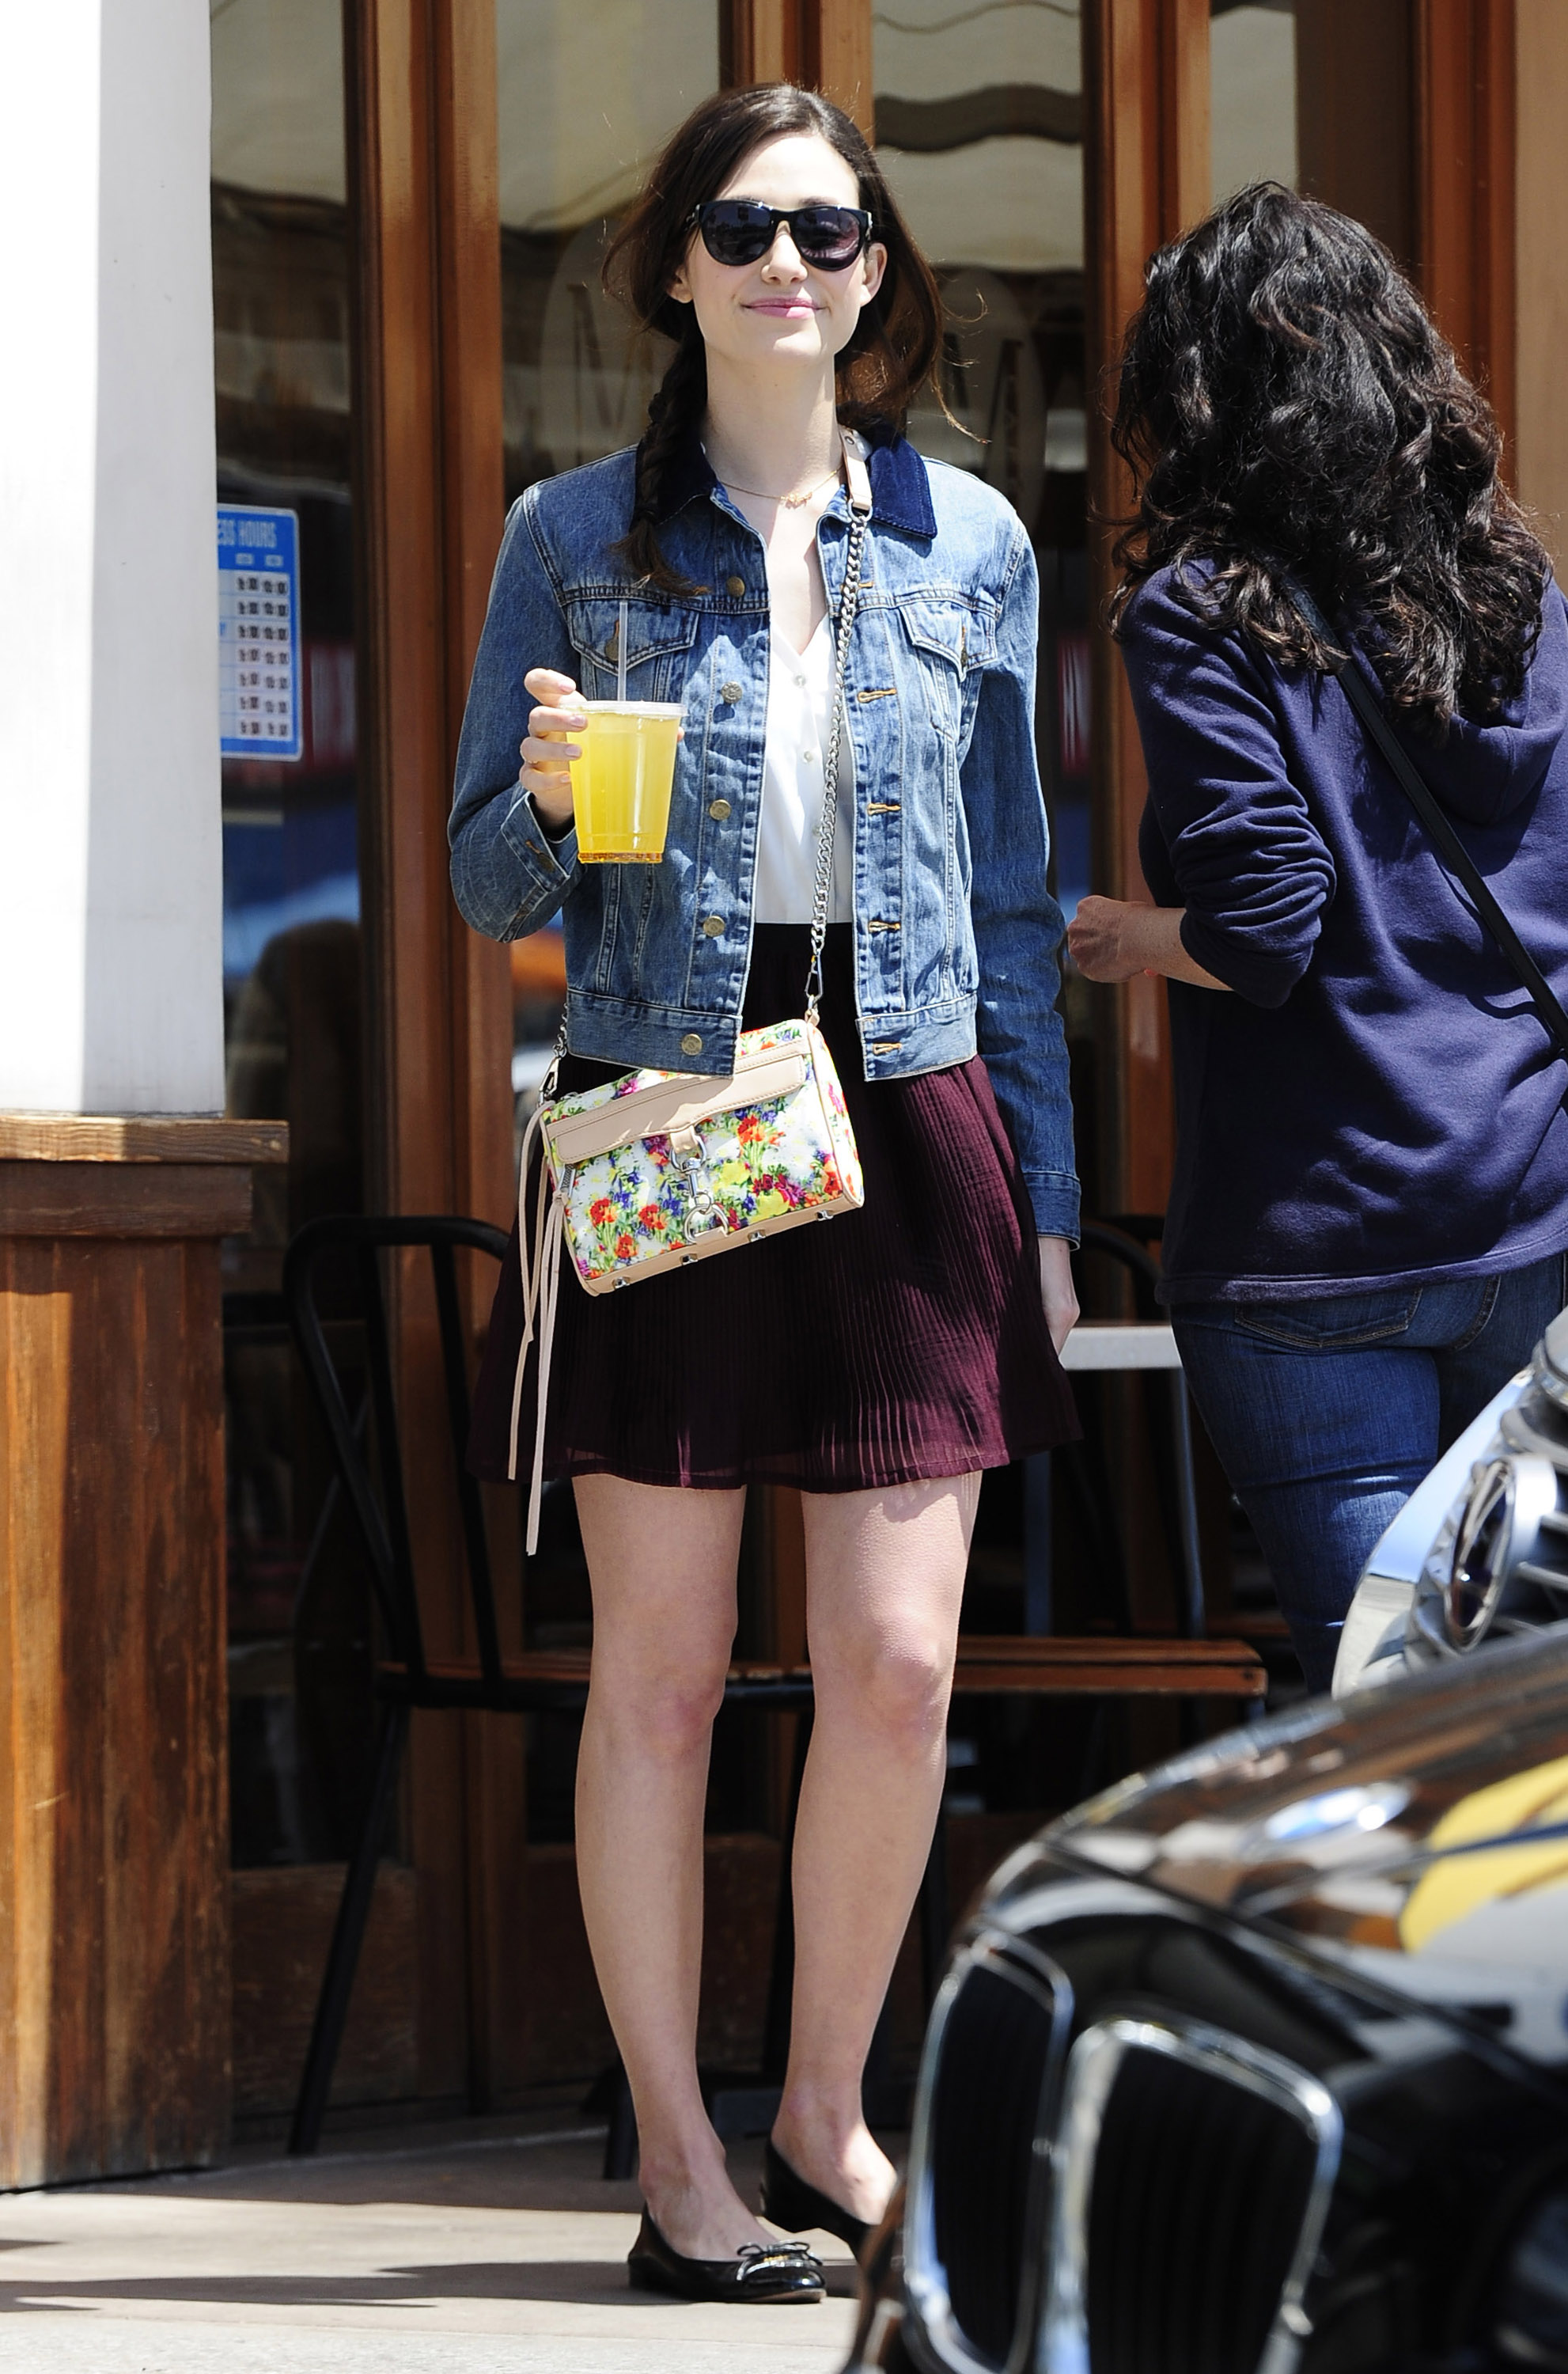 Get The Look: Emmy Rossum's Hip, Casual Look